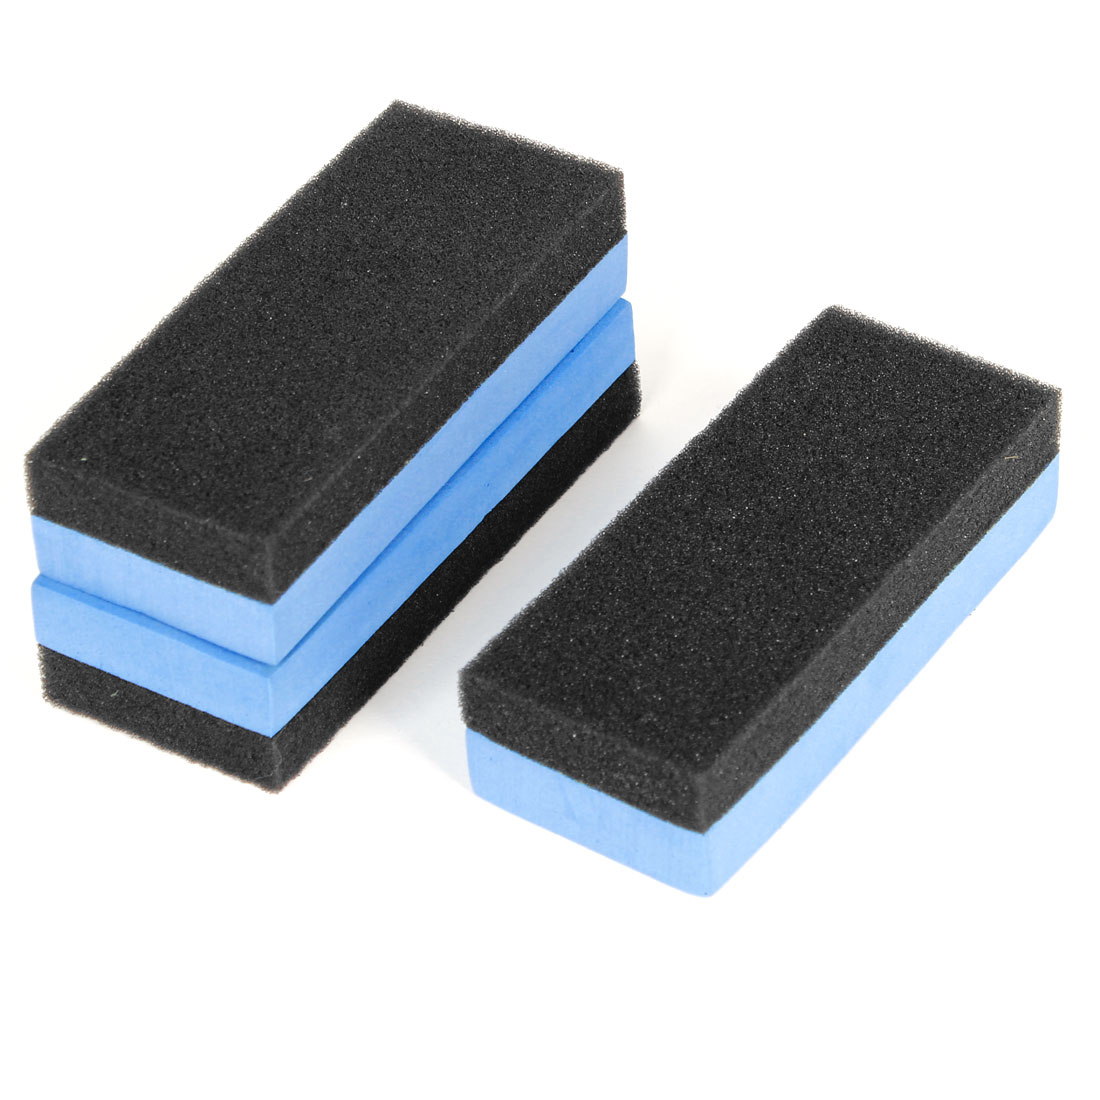 3PCS Auto Car Cube Waxing Sponge Foam Polishing Pad Blue Black 13cmx5.5cmx3cm